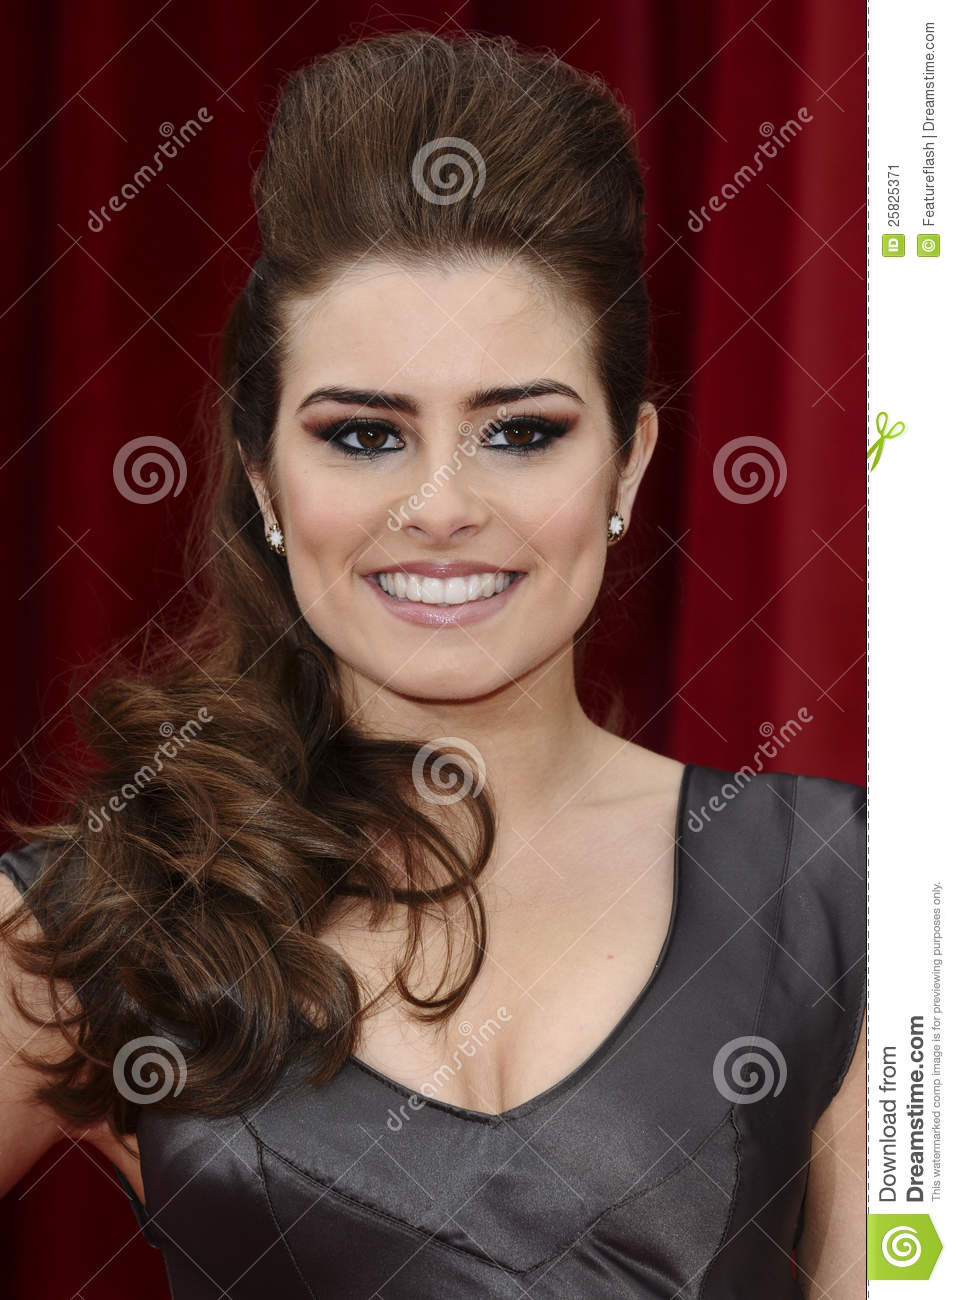 rachel shenton hotrachel shenton and cheryl cole, rachel shenton, rachel shenton instagram, rachel shenton switched at birth, rachel shenton gif, rachel shenton hot, rachel shenton feet, rachel shenton twitter, rachel shenton barrister, rachel shenton imdb, rachel shenton boyfriend, rachel shenton bum, rachel shenton pregnant, rachel shenton bikini, rachel shenton waterloo road, rachel shenton tumblr, rachel shenton height